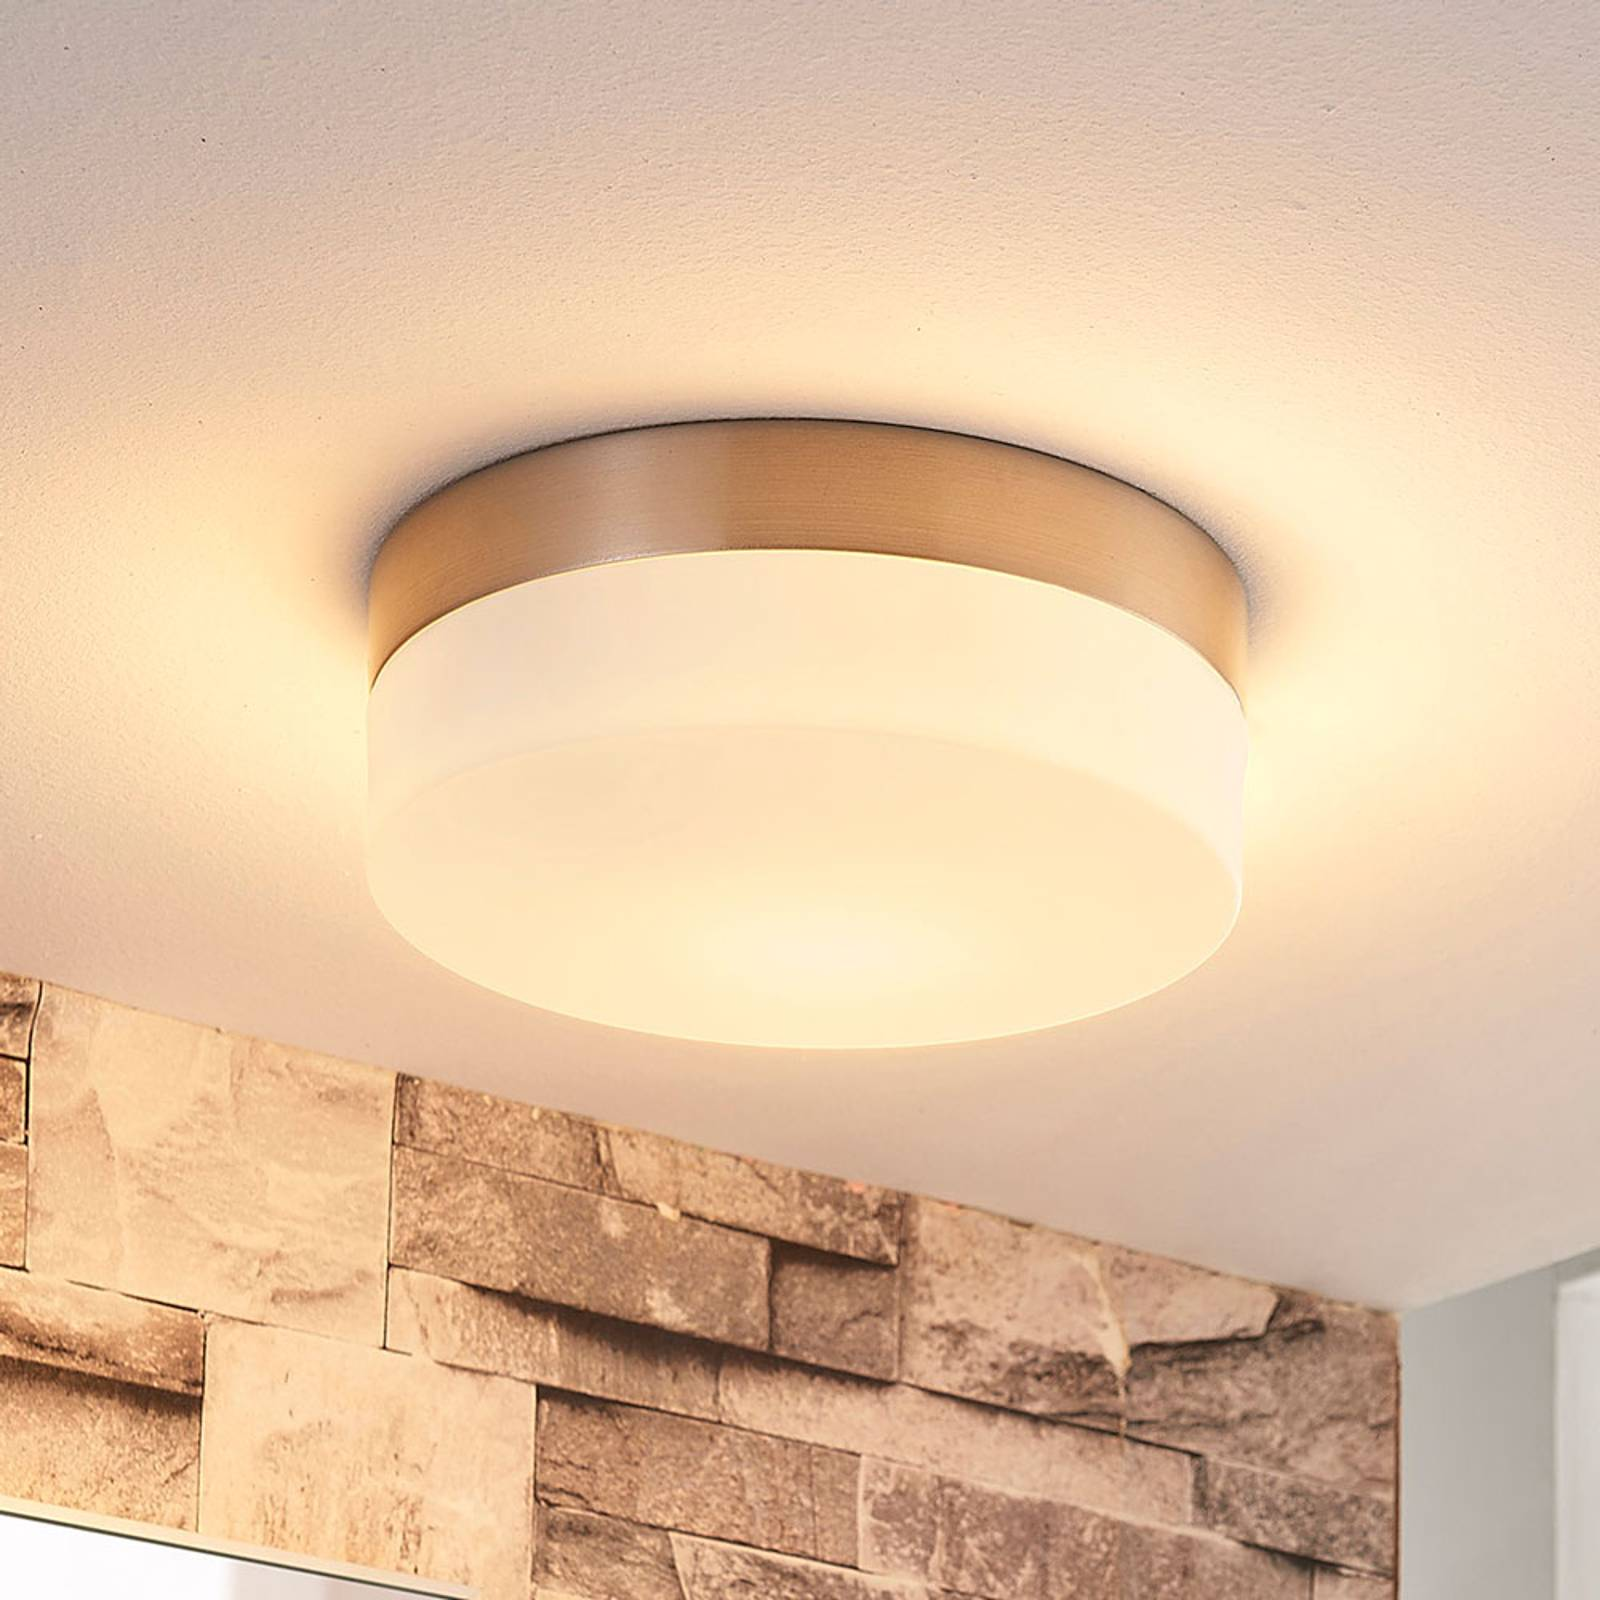 Amilia bathroom ceiling light with glass lampshade from Lindby